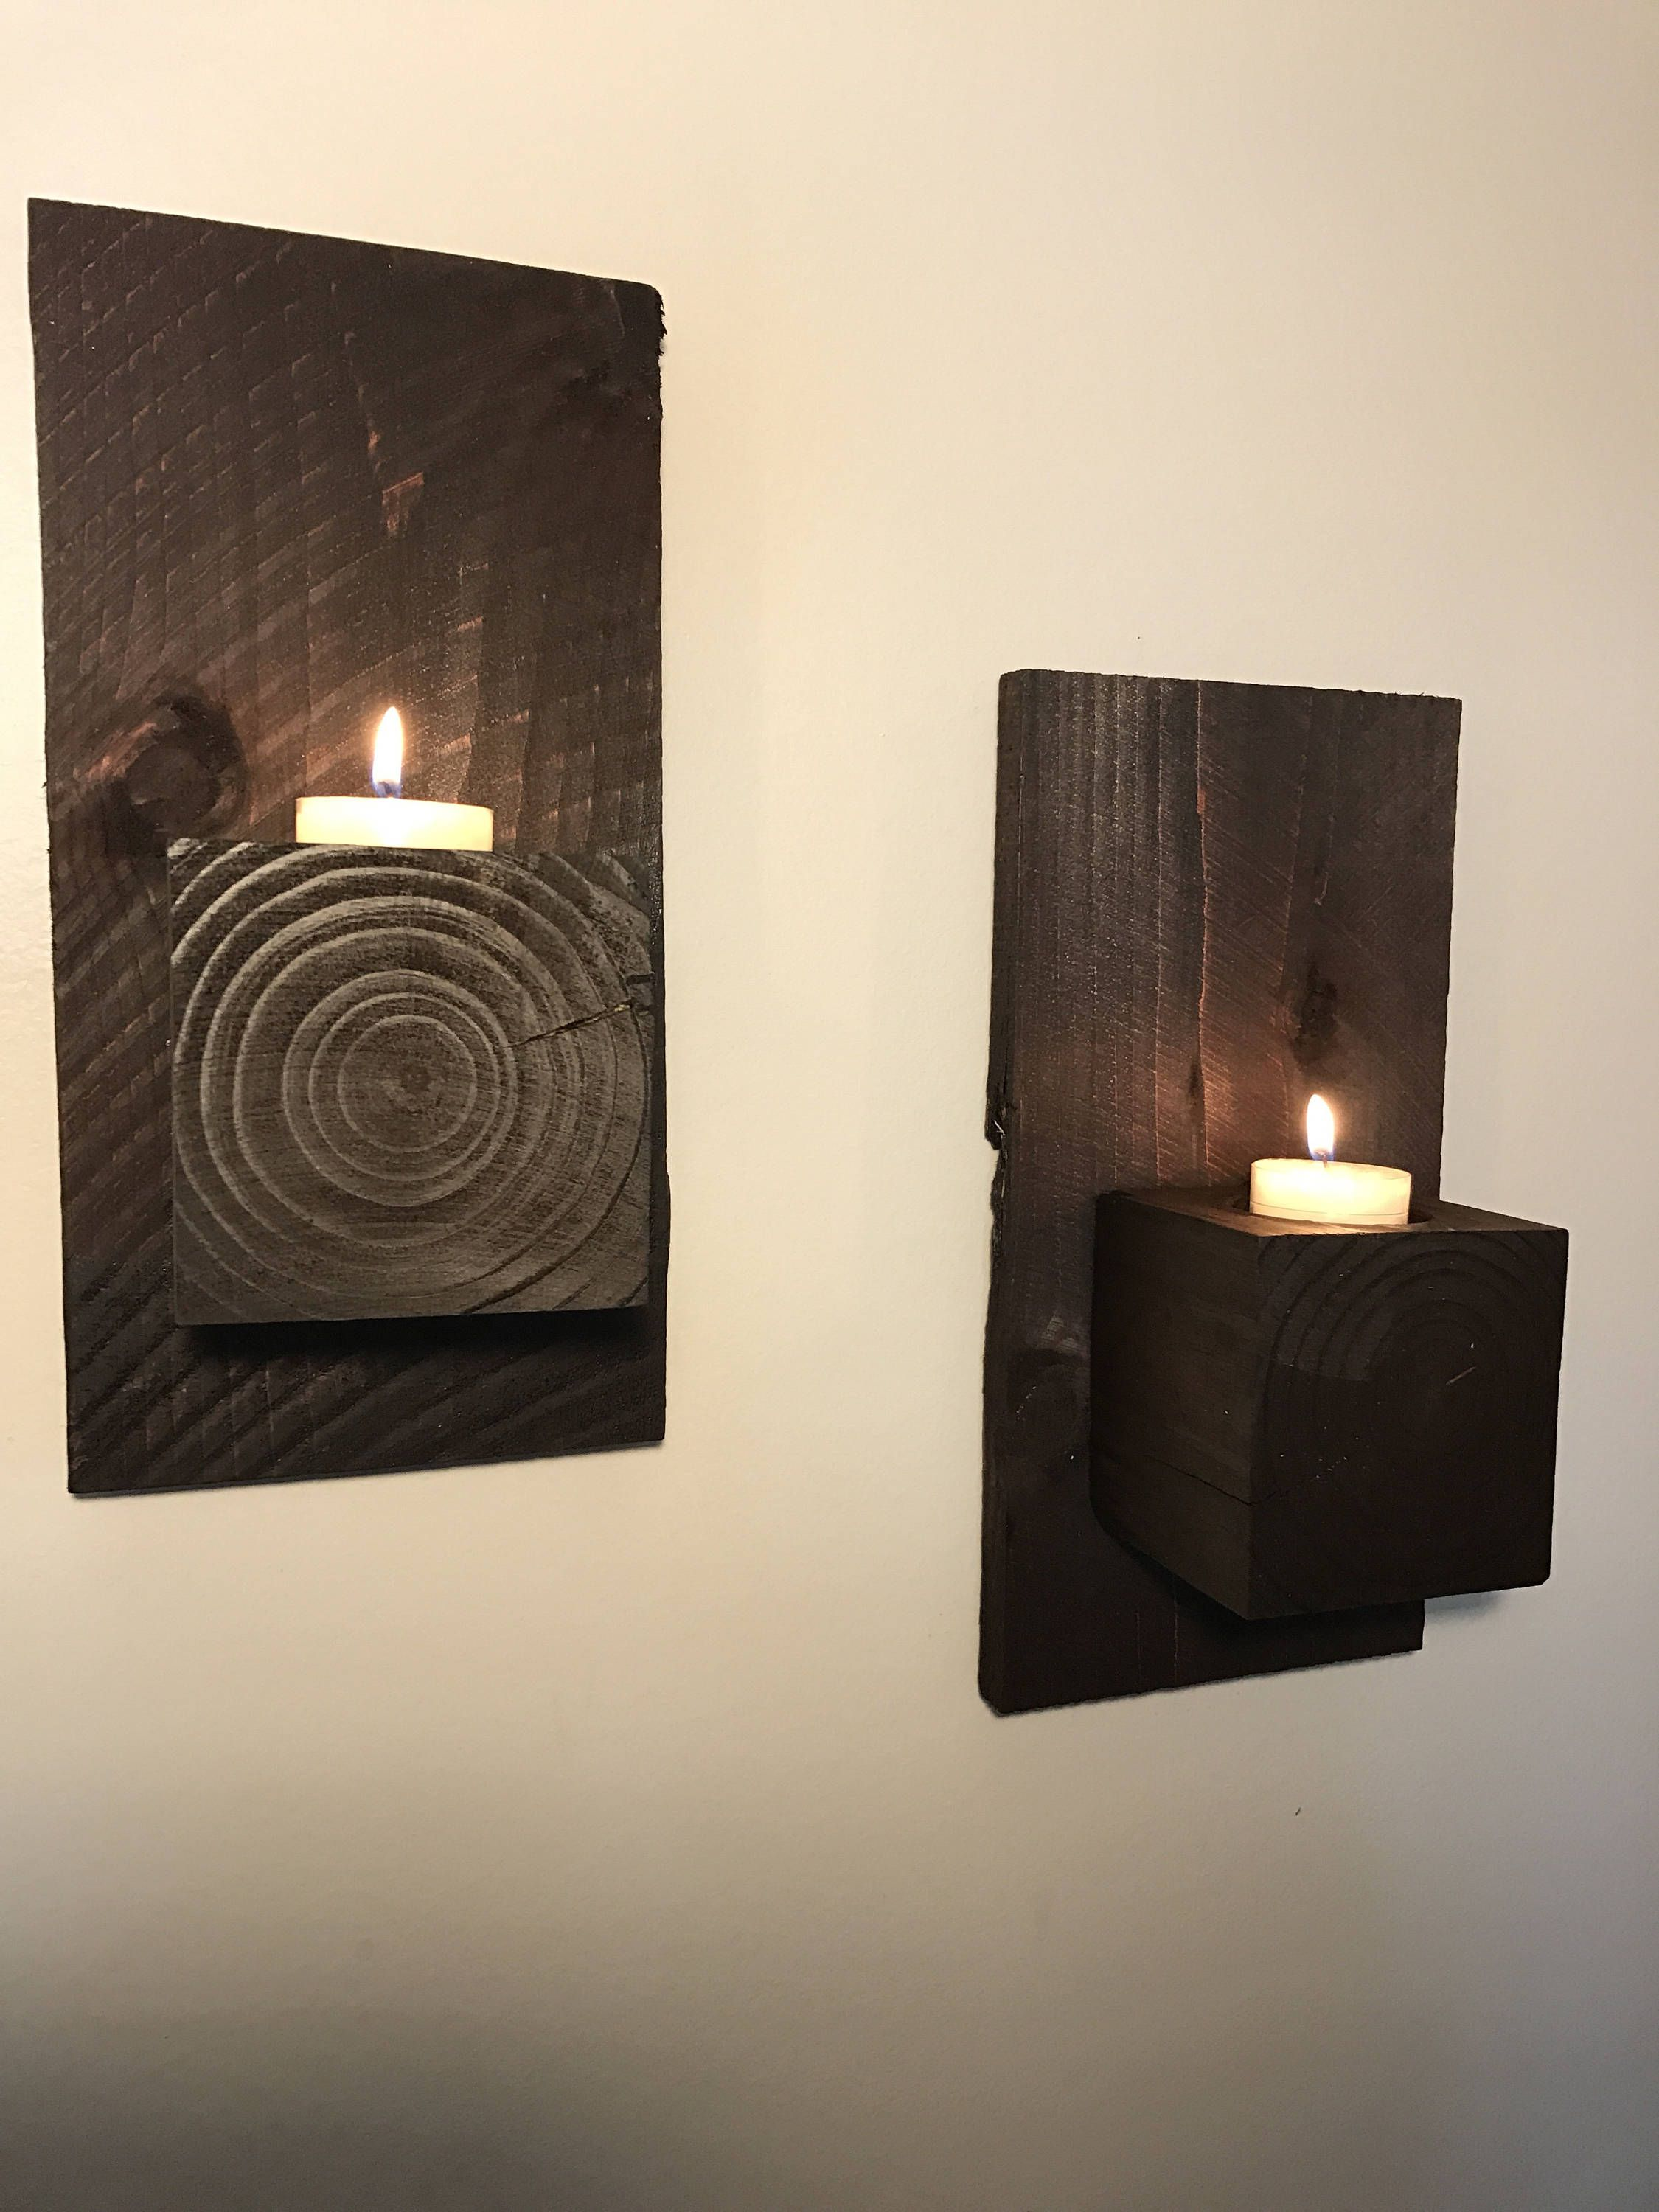 Minimalist Geometric Nordic Style Iron Candle Holders For Small